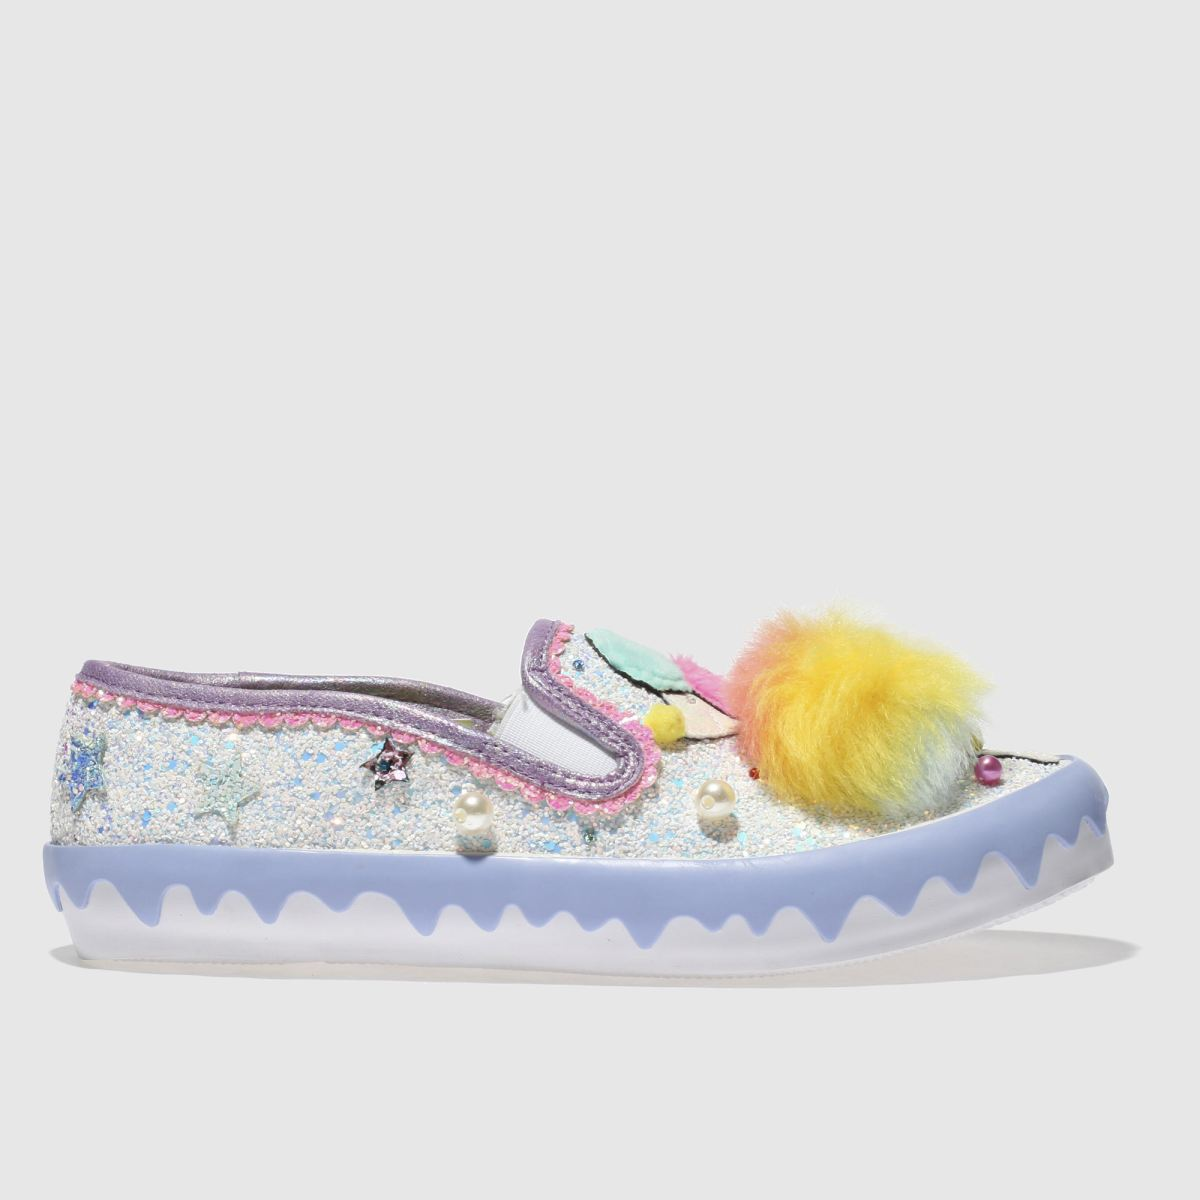 Irregular Choice Irregular Choice White & Purple Pom Pom Poodle Flat Shoes